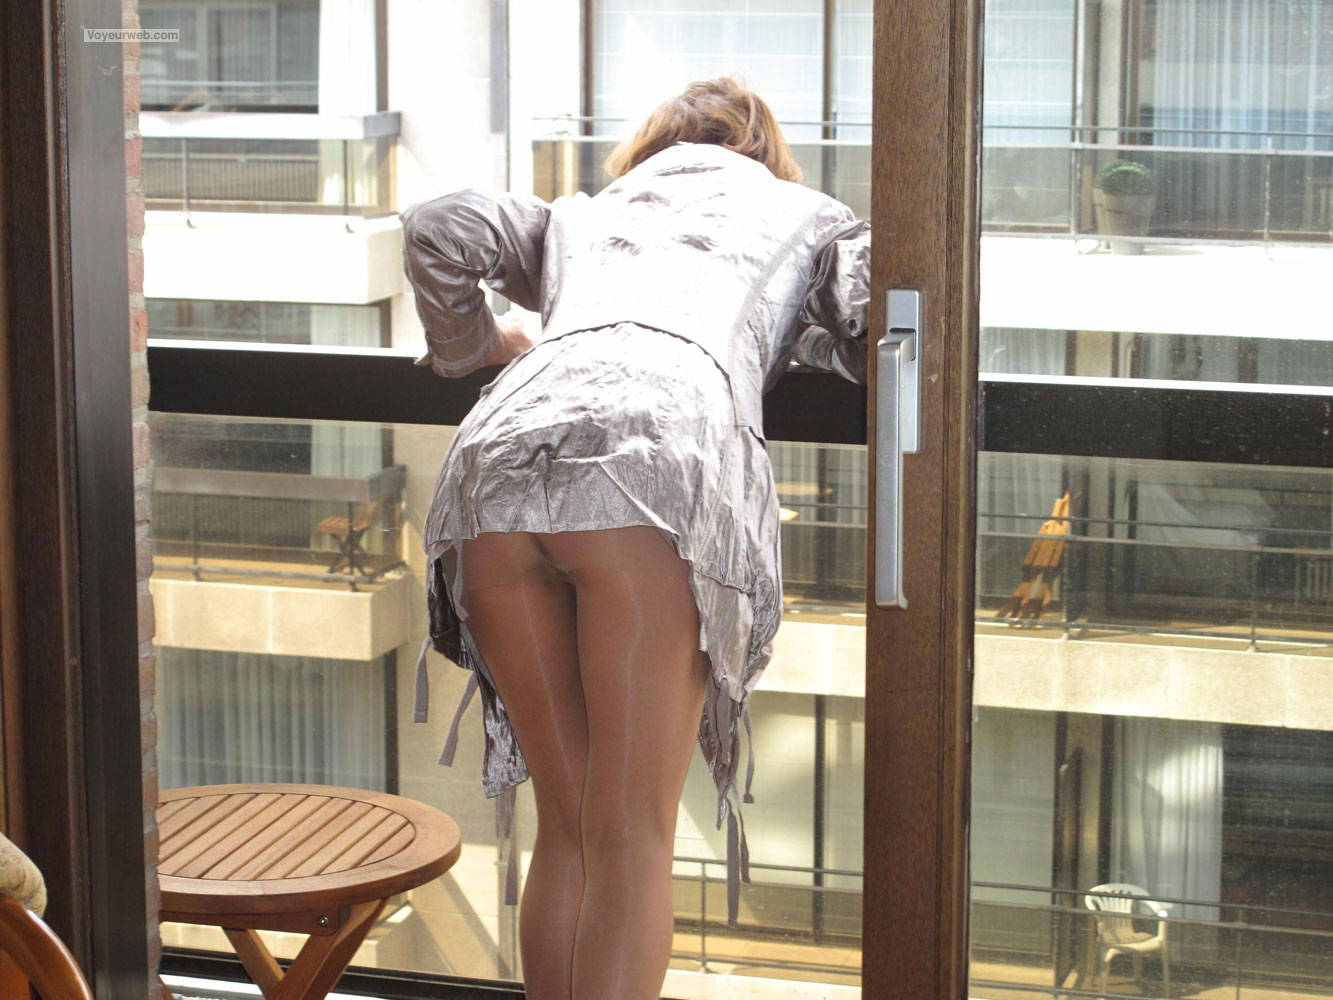 stockings and bent over and upskirt and head